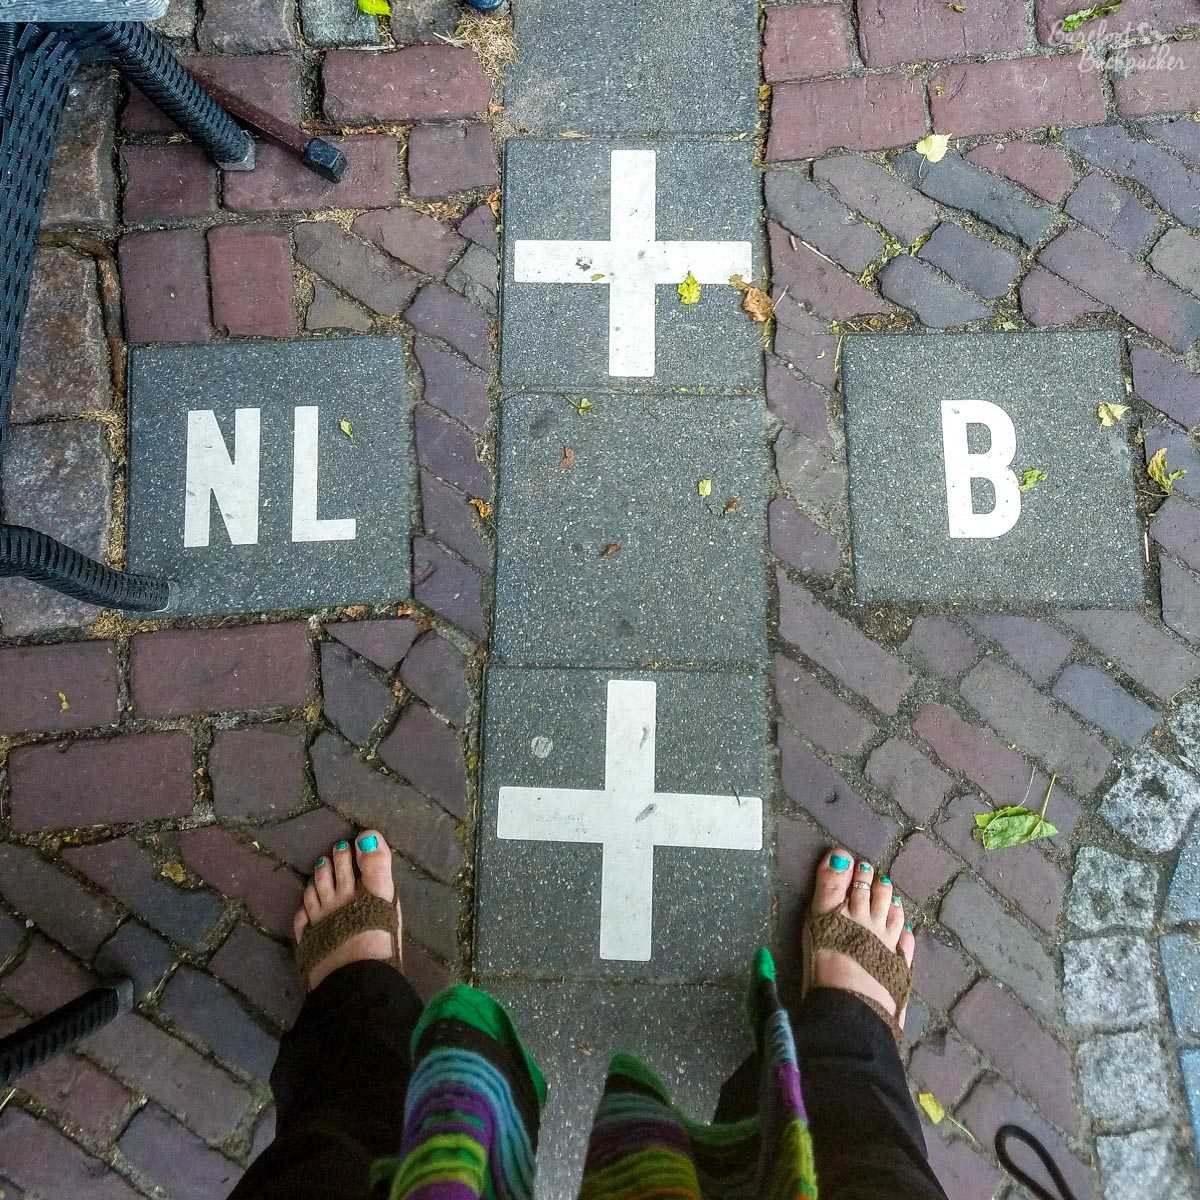 Stood astride the Dutch/Belgian border in Baarle-Hertog/Baarle-Nassau, one (bare) foot in each country. The quirky borders here were why it was on my Bucket List.